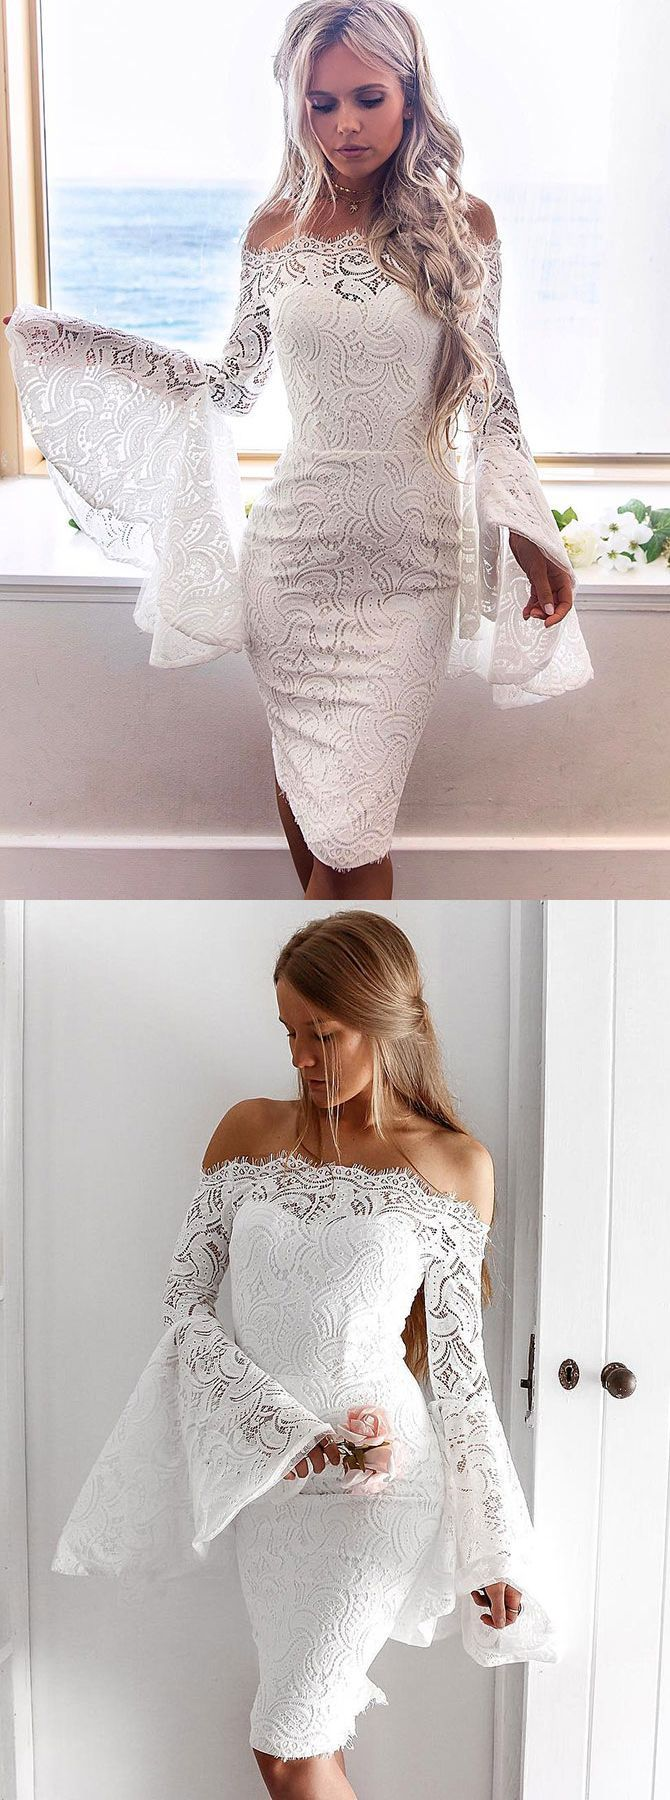 Sheath offtheshoulder bell sleeves kneelength white lace